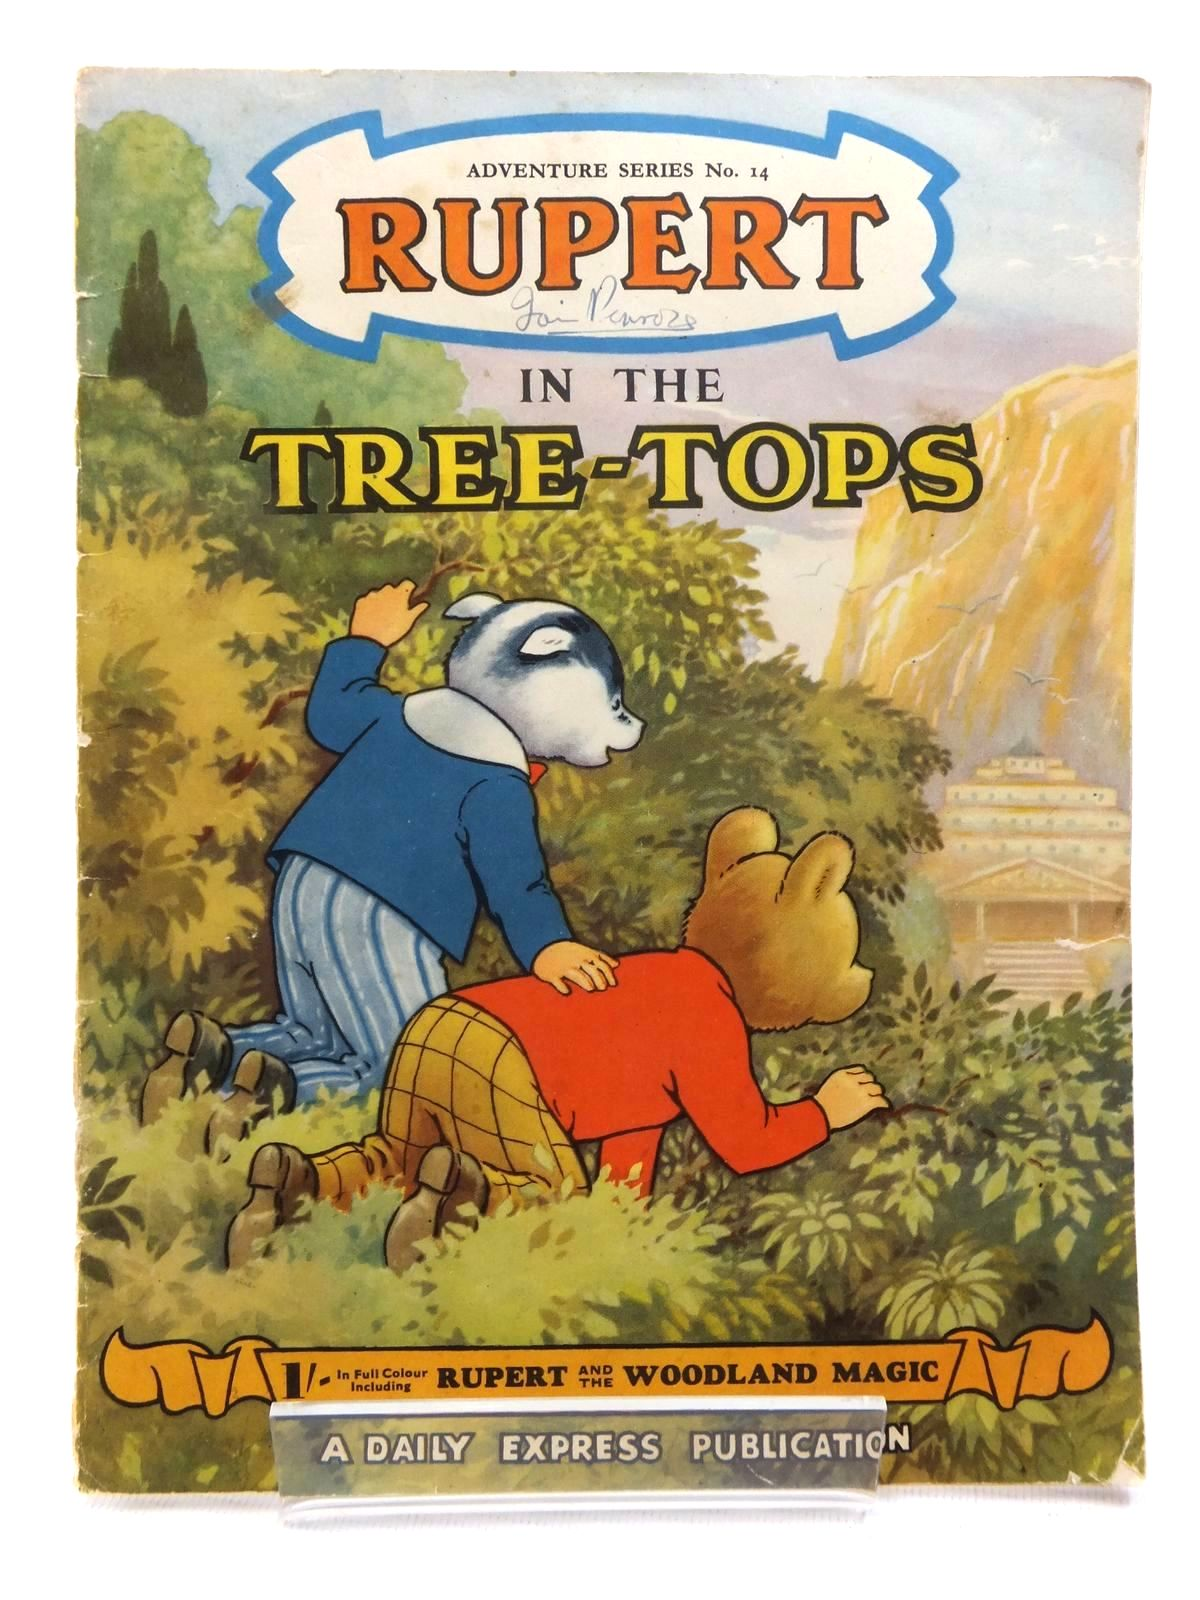 Photo of RUPERT ADVENTURE SERIES No. 14 - RUPERT IN THE TREE TOPS written by Bestall, Alfred illustrated by Bestall, Alfred Cubie, Alex published by Daily Express (STOCK CODE: 1609551)  for sale by Stella & Rose's Books